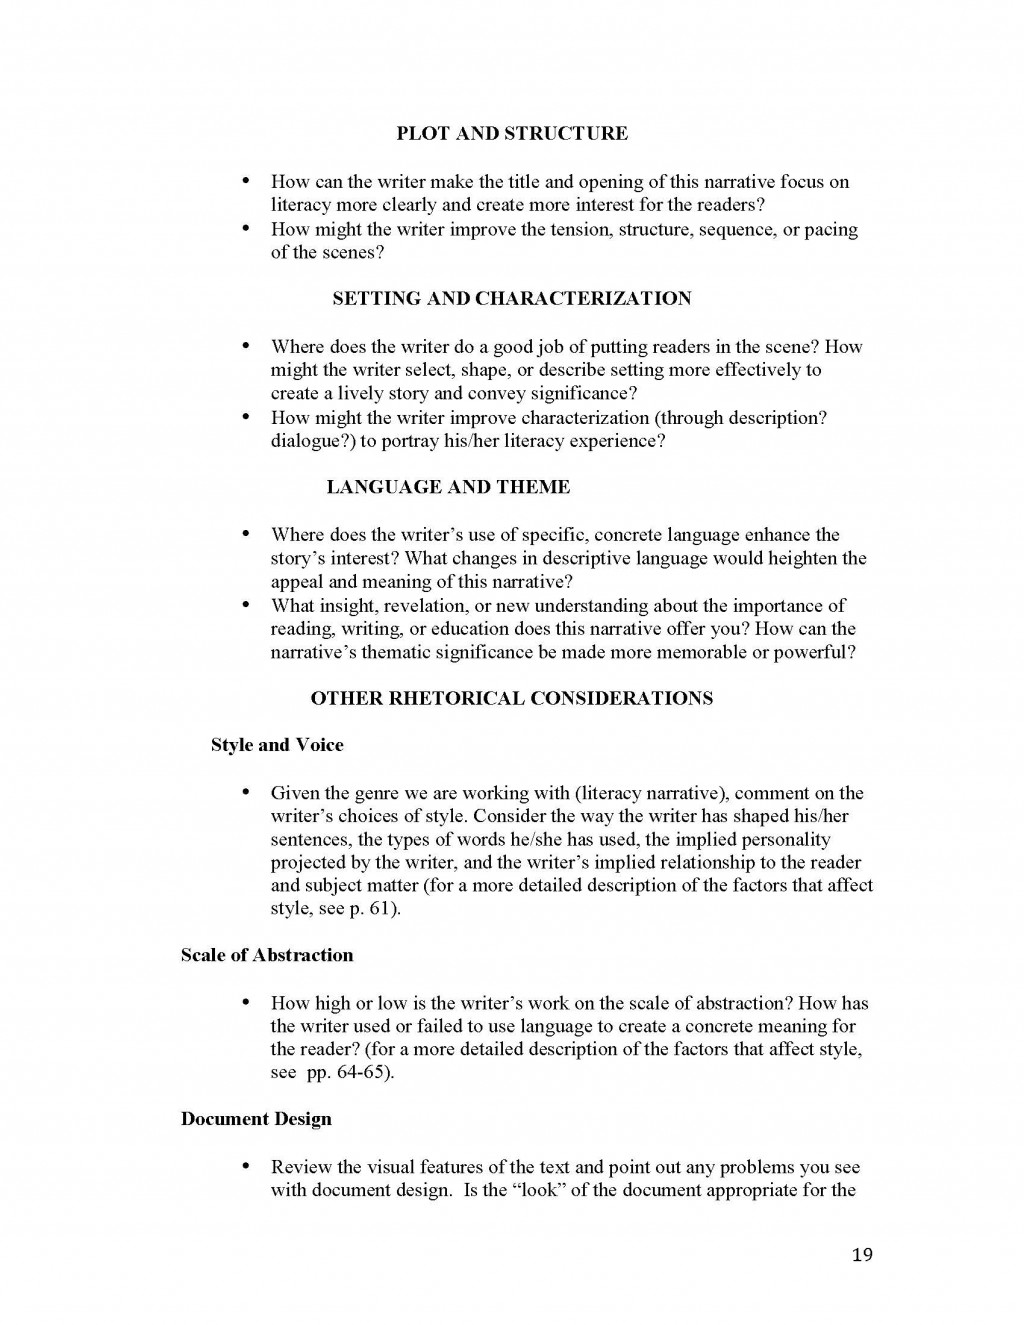 007 Essay Example On Immigration Unit 1 Literacy Narrative Instructor Copy Page 19 Unforgettable In Usa Essays Policy The United States Large